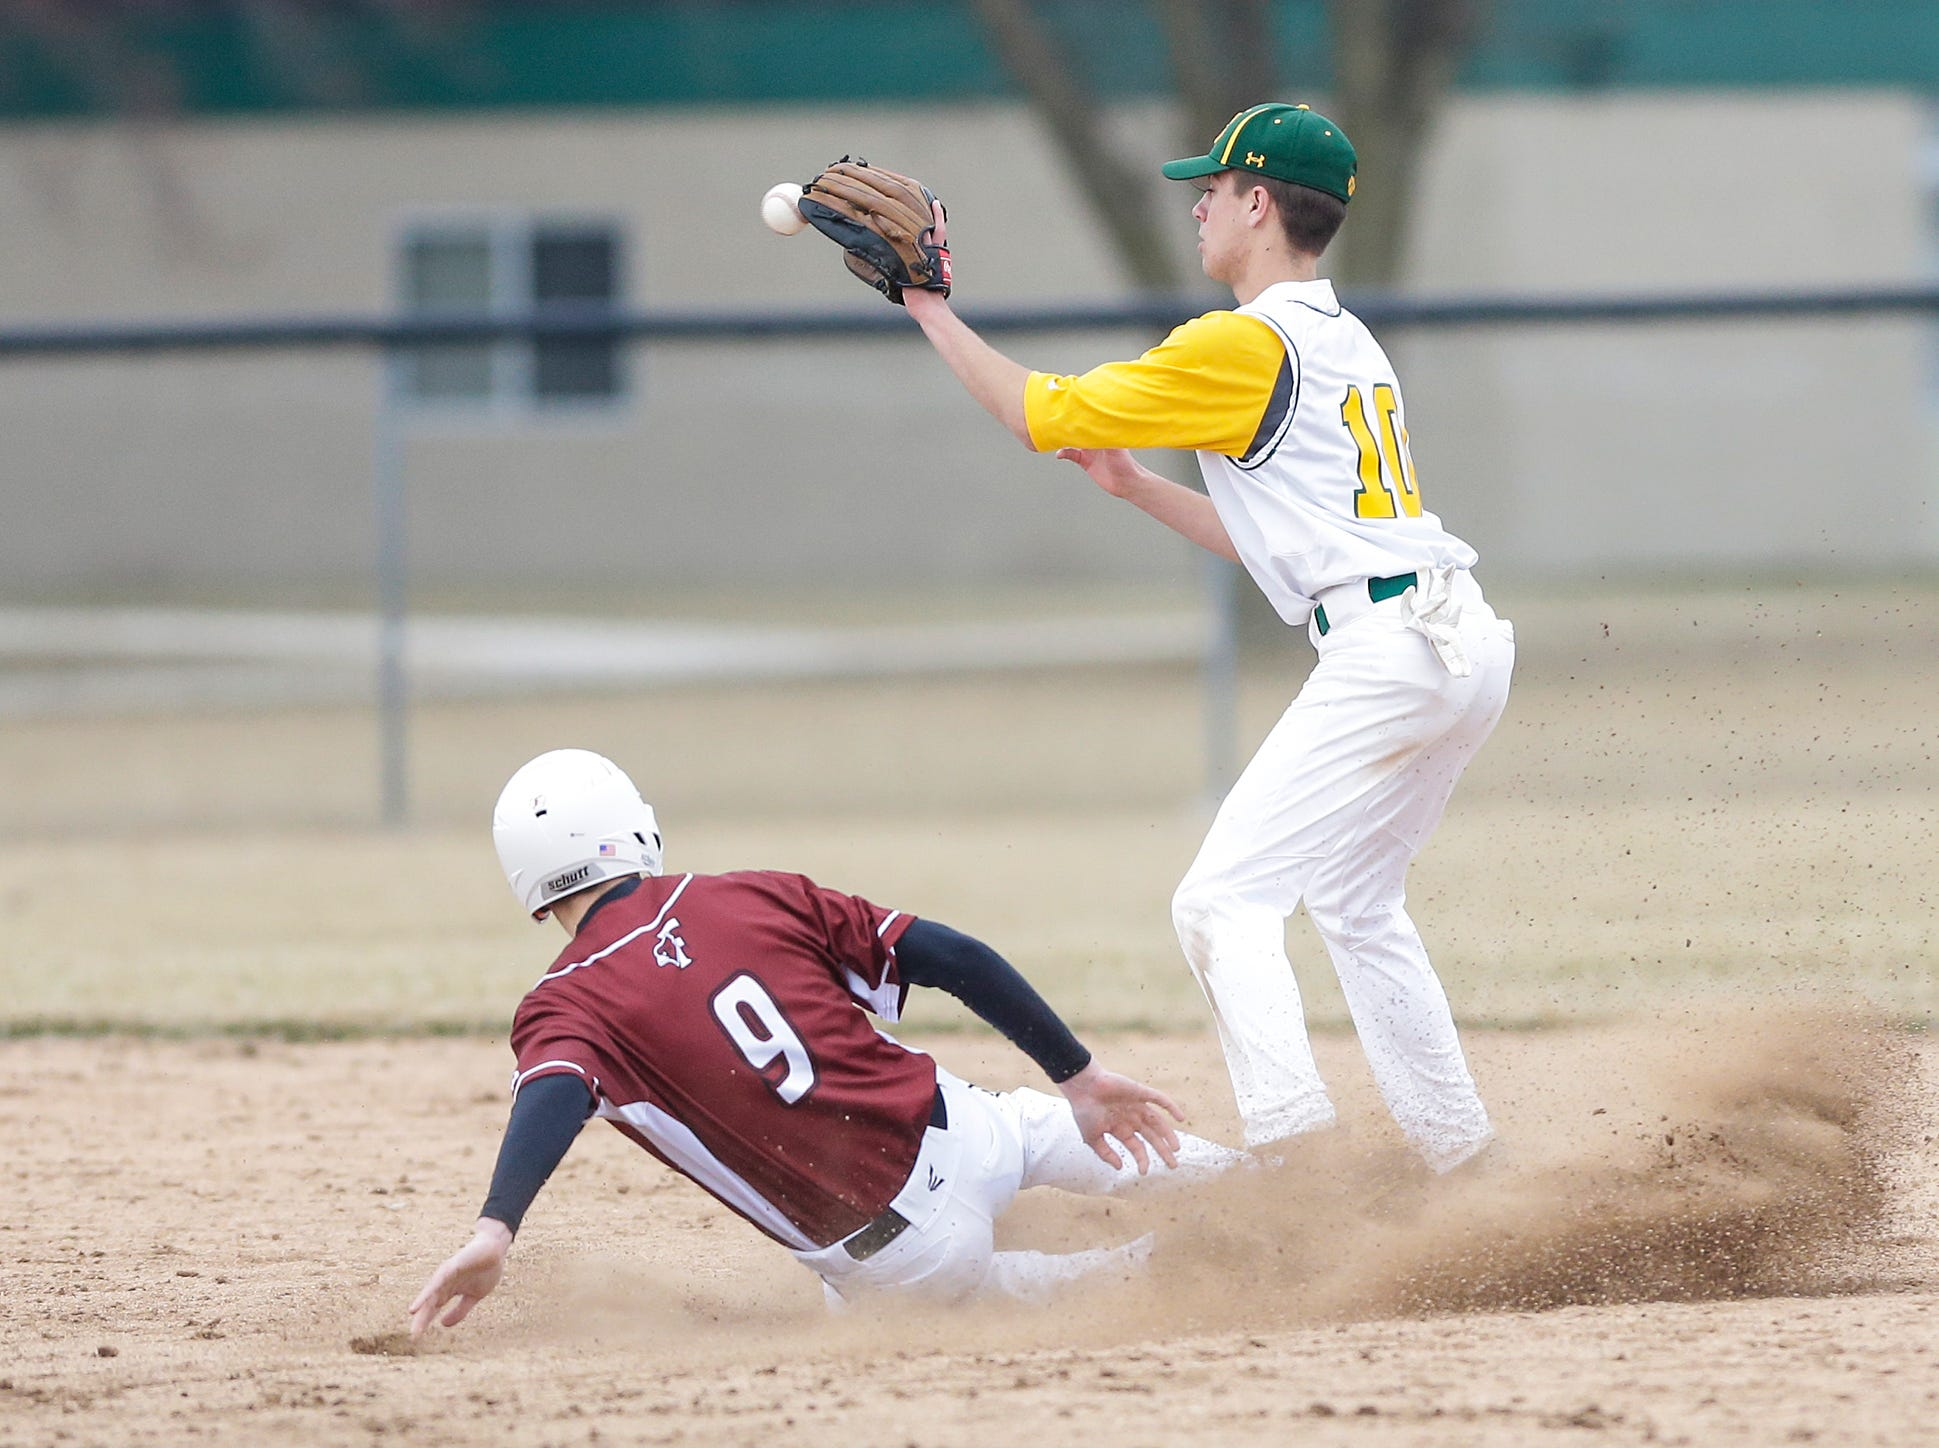 Fond du Lac High School baseball's Eli Schipper (9) gets tagged out at second base by Ashwaubenon High School's Luke Hansford (10) Saturday, April 6, 2019 during their game in Fond du Lac, Wis. Fond du Lac won the game 5-3. Doug Raflik/USA TODAY NETWORK-Wisconsin